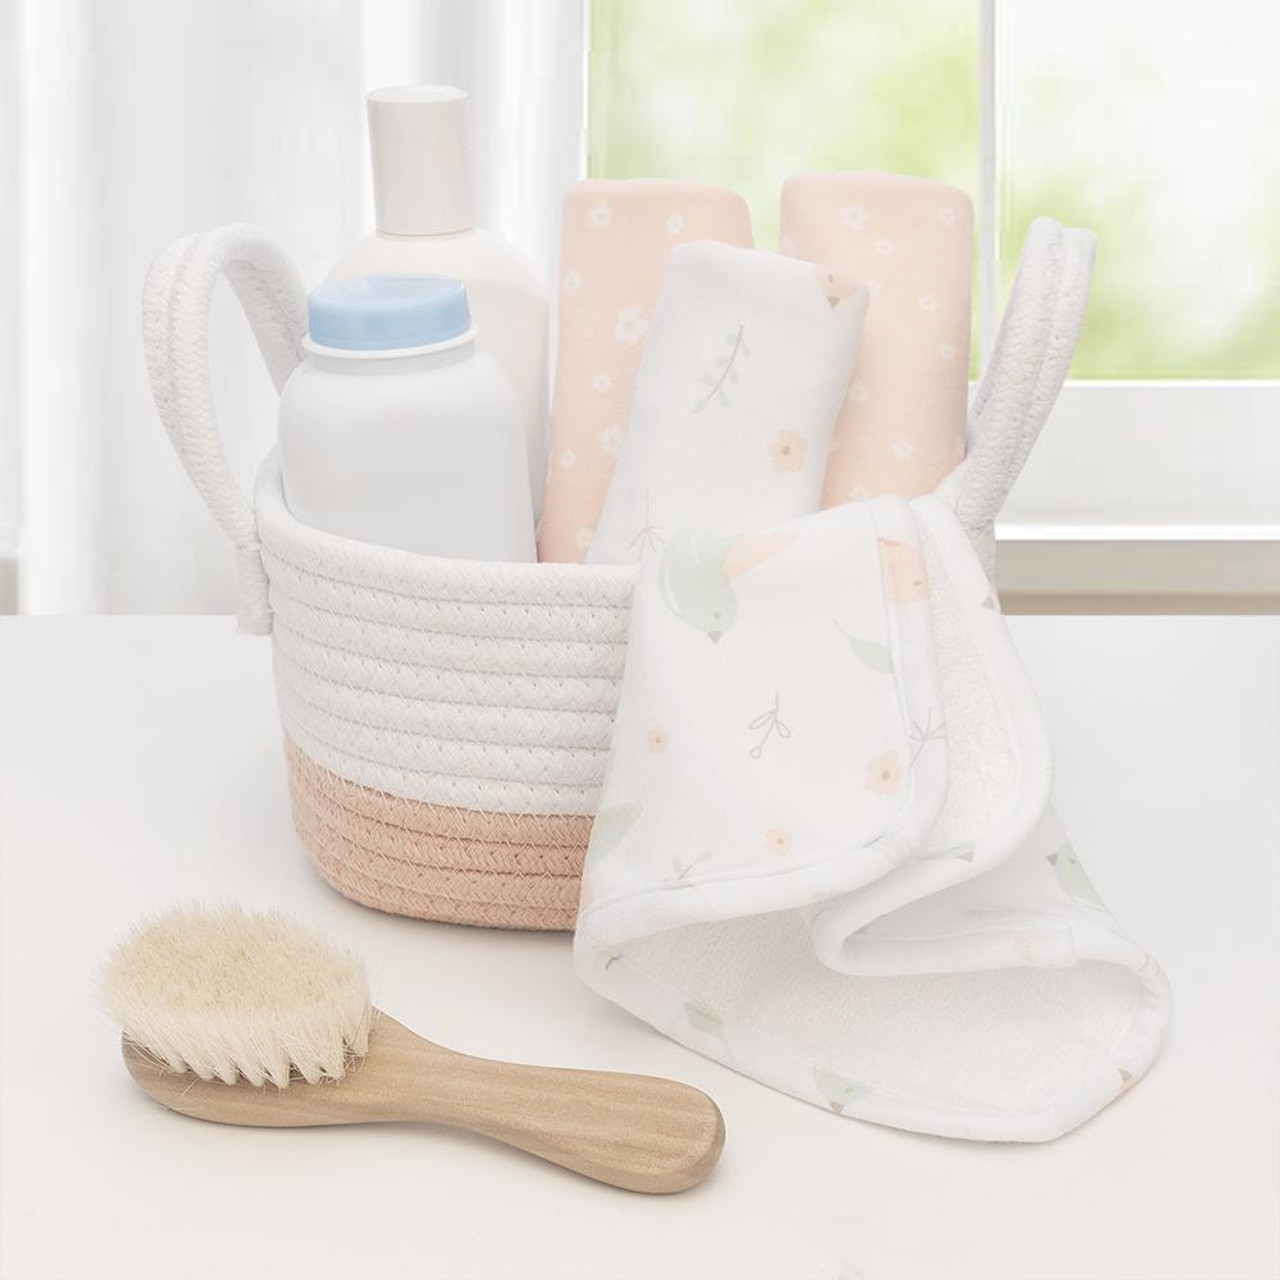 Living Textiles Cotton Towelling Jersey 4pk Face Wash Cloths Living Textiles Cotton Towelling Jersey 4pk Face Wash Cloths - SWAN Add a bit if luxury to baby's day with the 4pk of washcloths from Living Textiles. These deluxe  washcloths are perfect for everyday use during bath time or on the go.